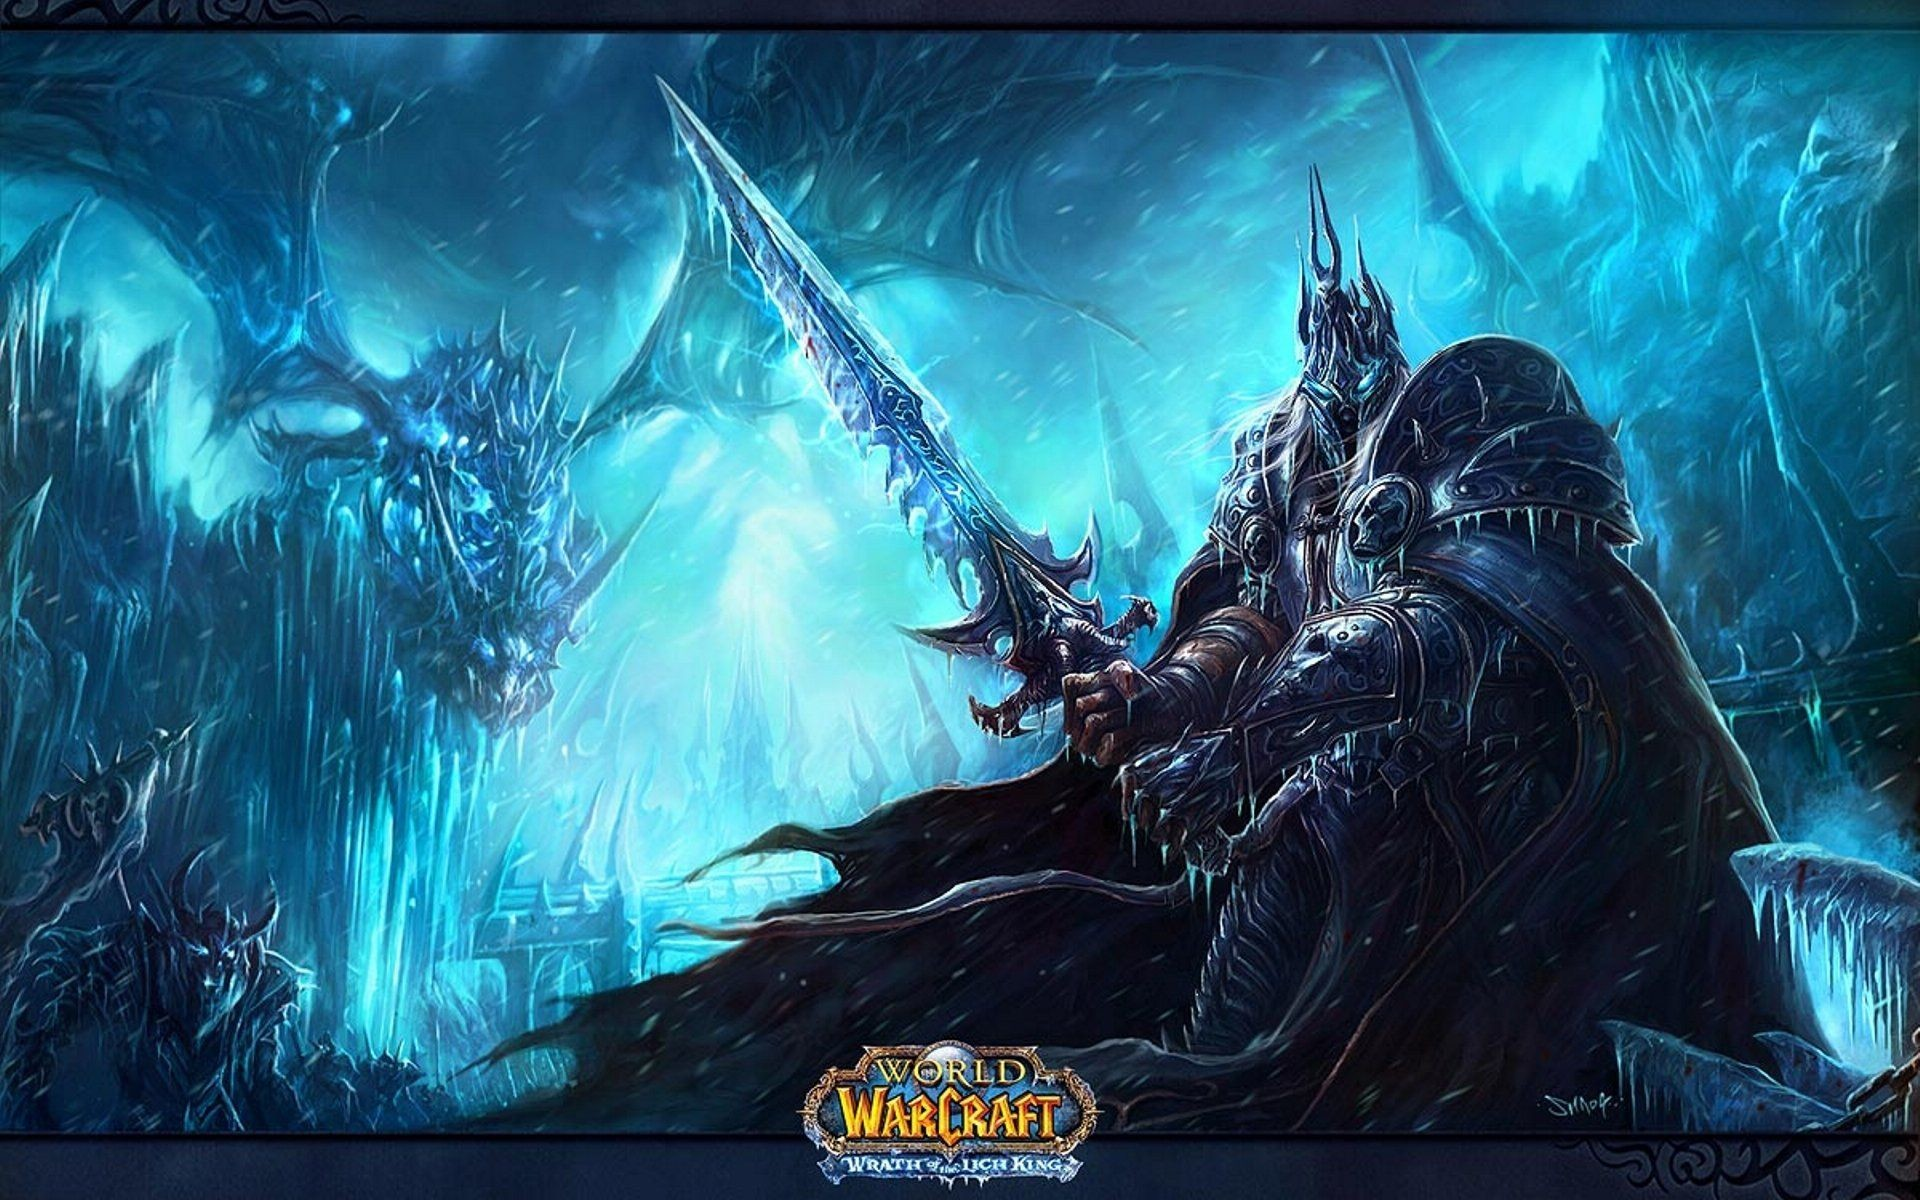 world of warcraft animated wallpaper  WoW Screensavers and Animated Wallpaper (74  images)